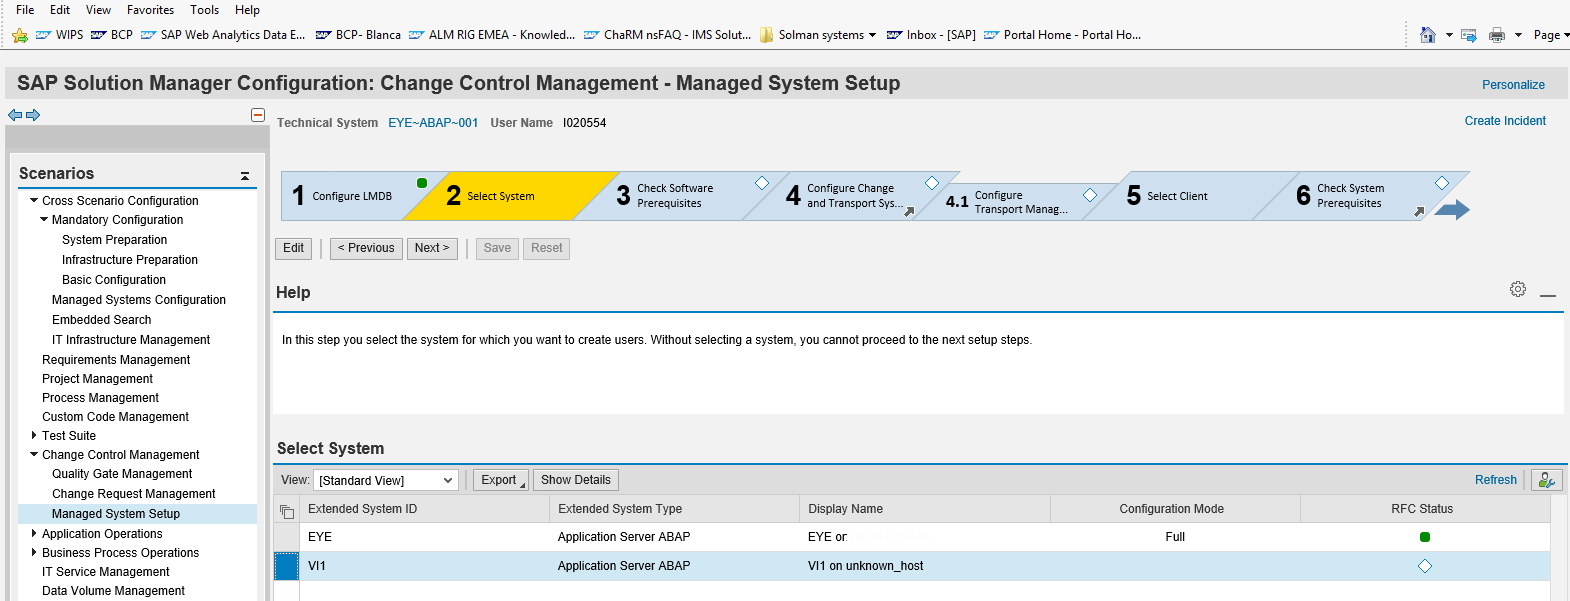 How to create a virtual system in SAP Solution Manager 7 2